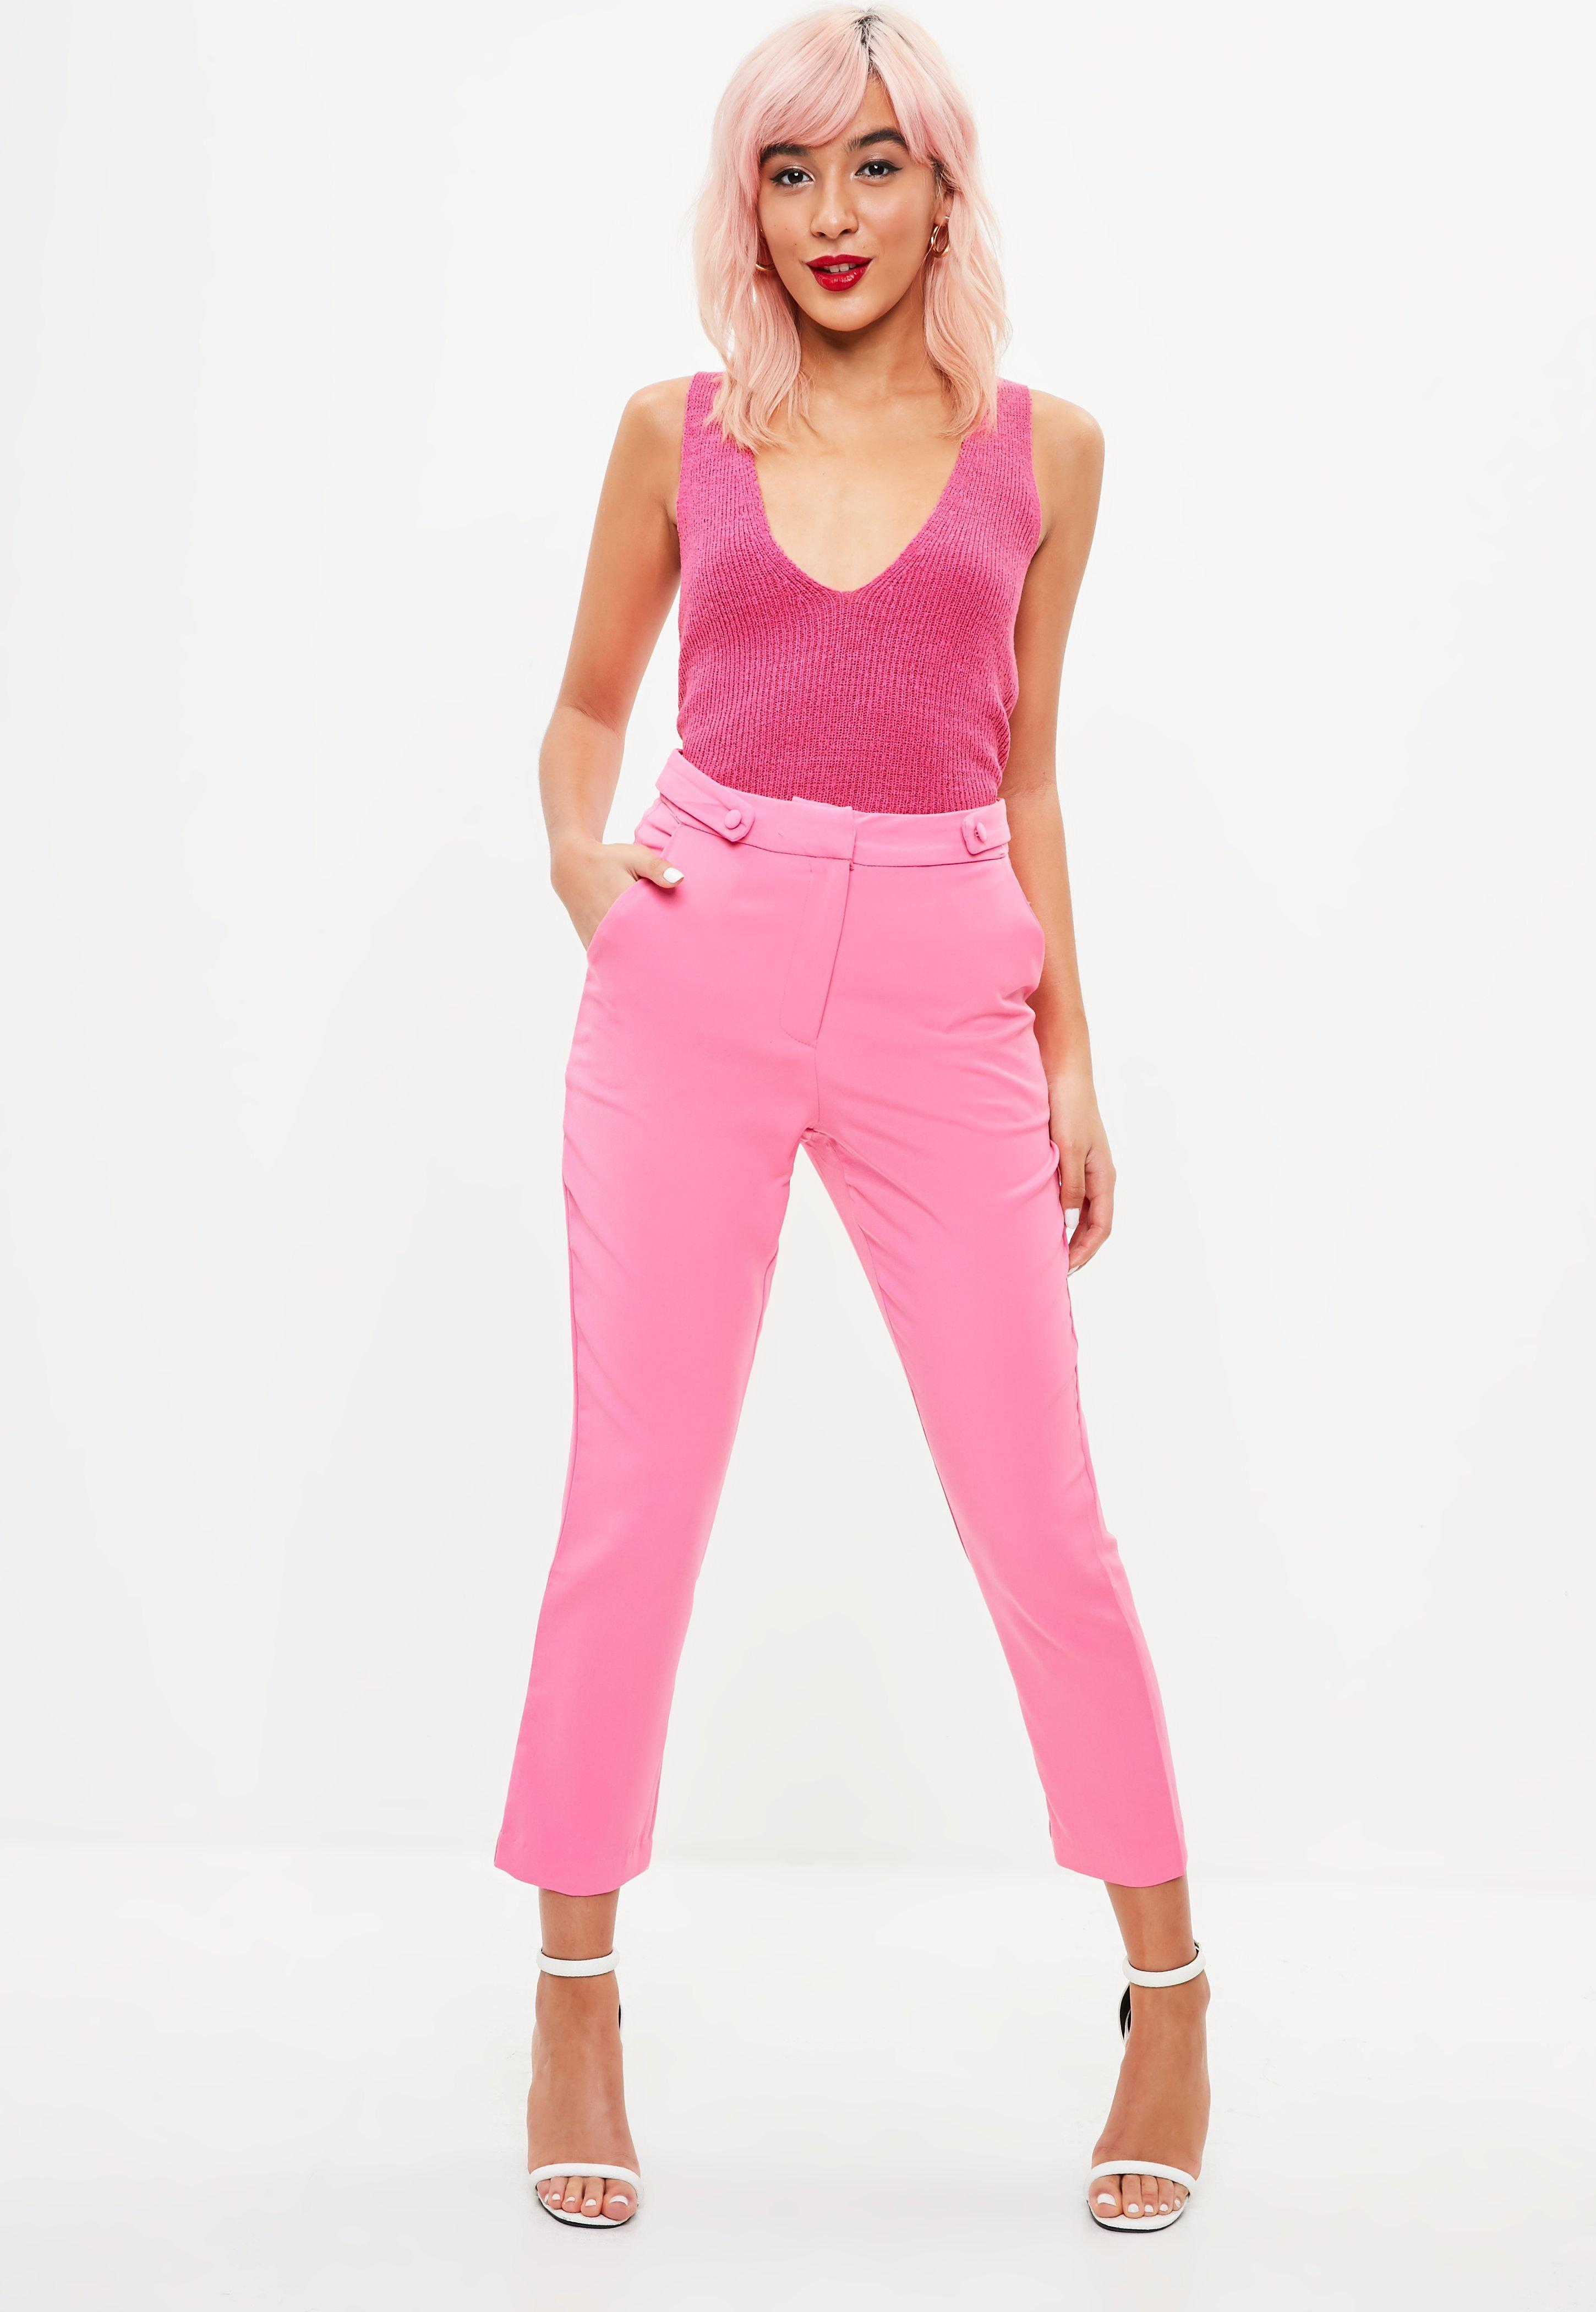 64f51e1fe0041 Missguided Pink Plunge Knitted Tank Top in Pink - Lyst